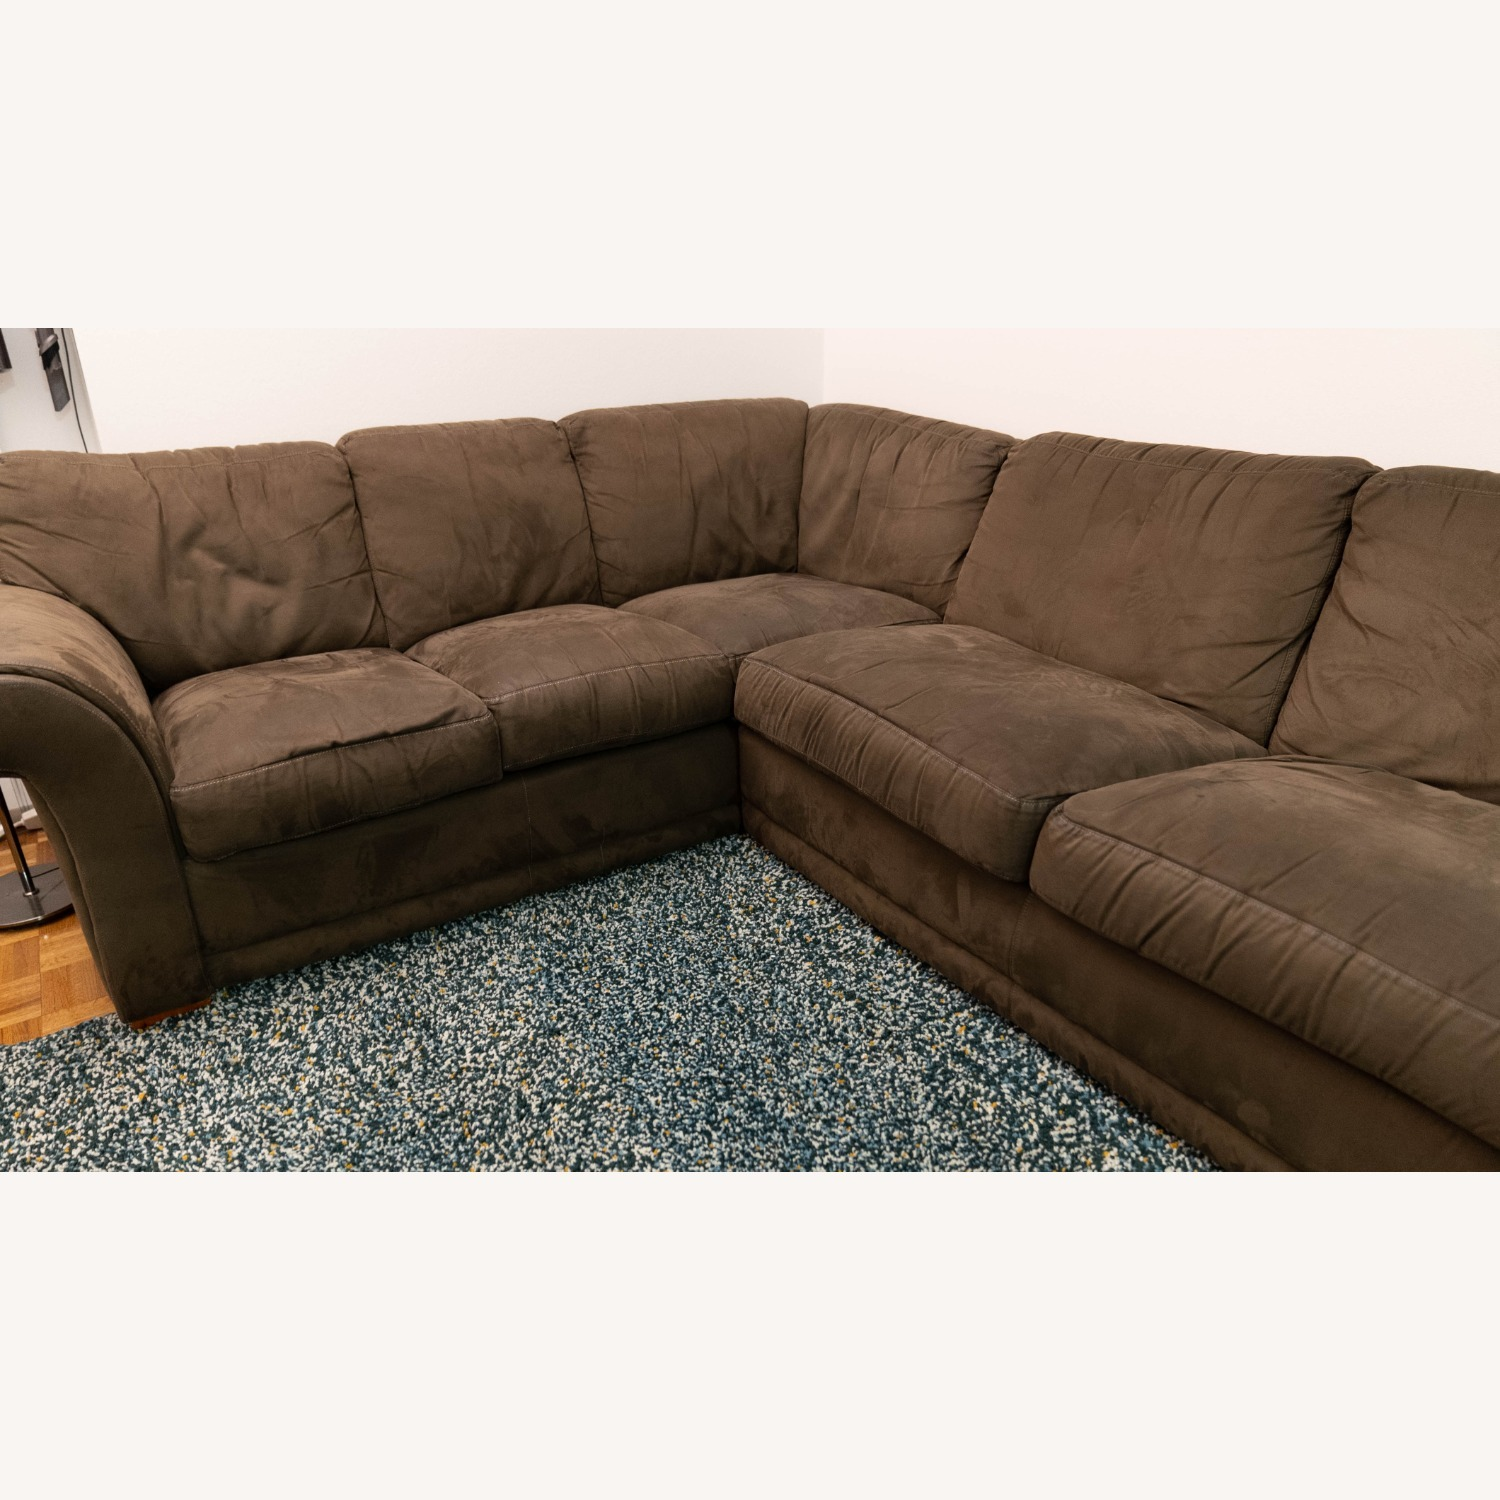 Super Comfortable Sectional Couch - image-3